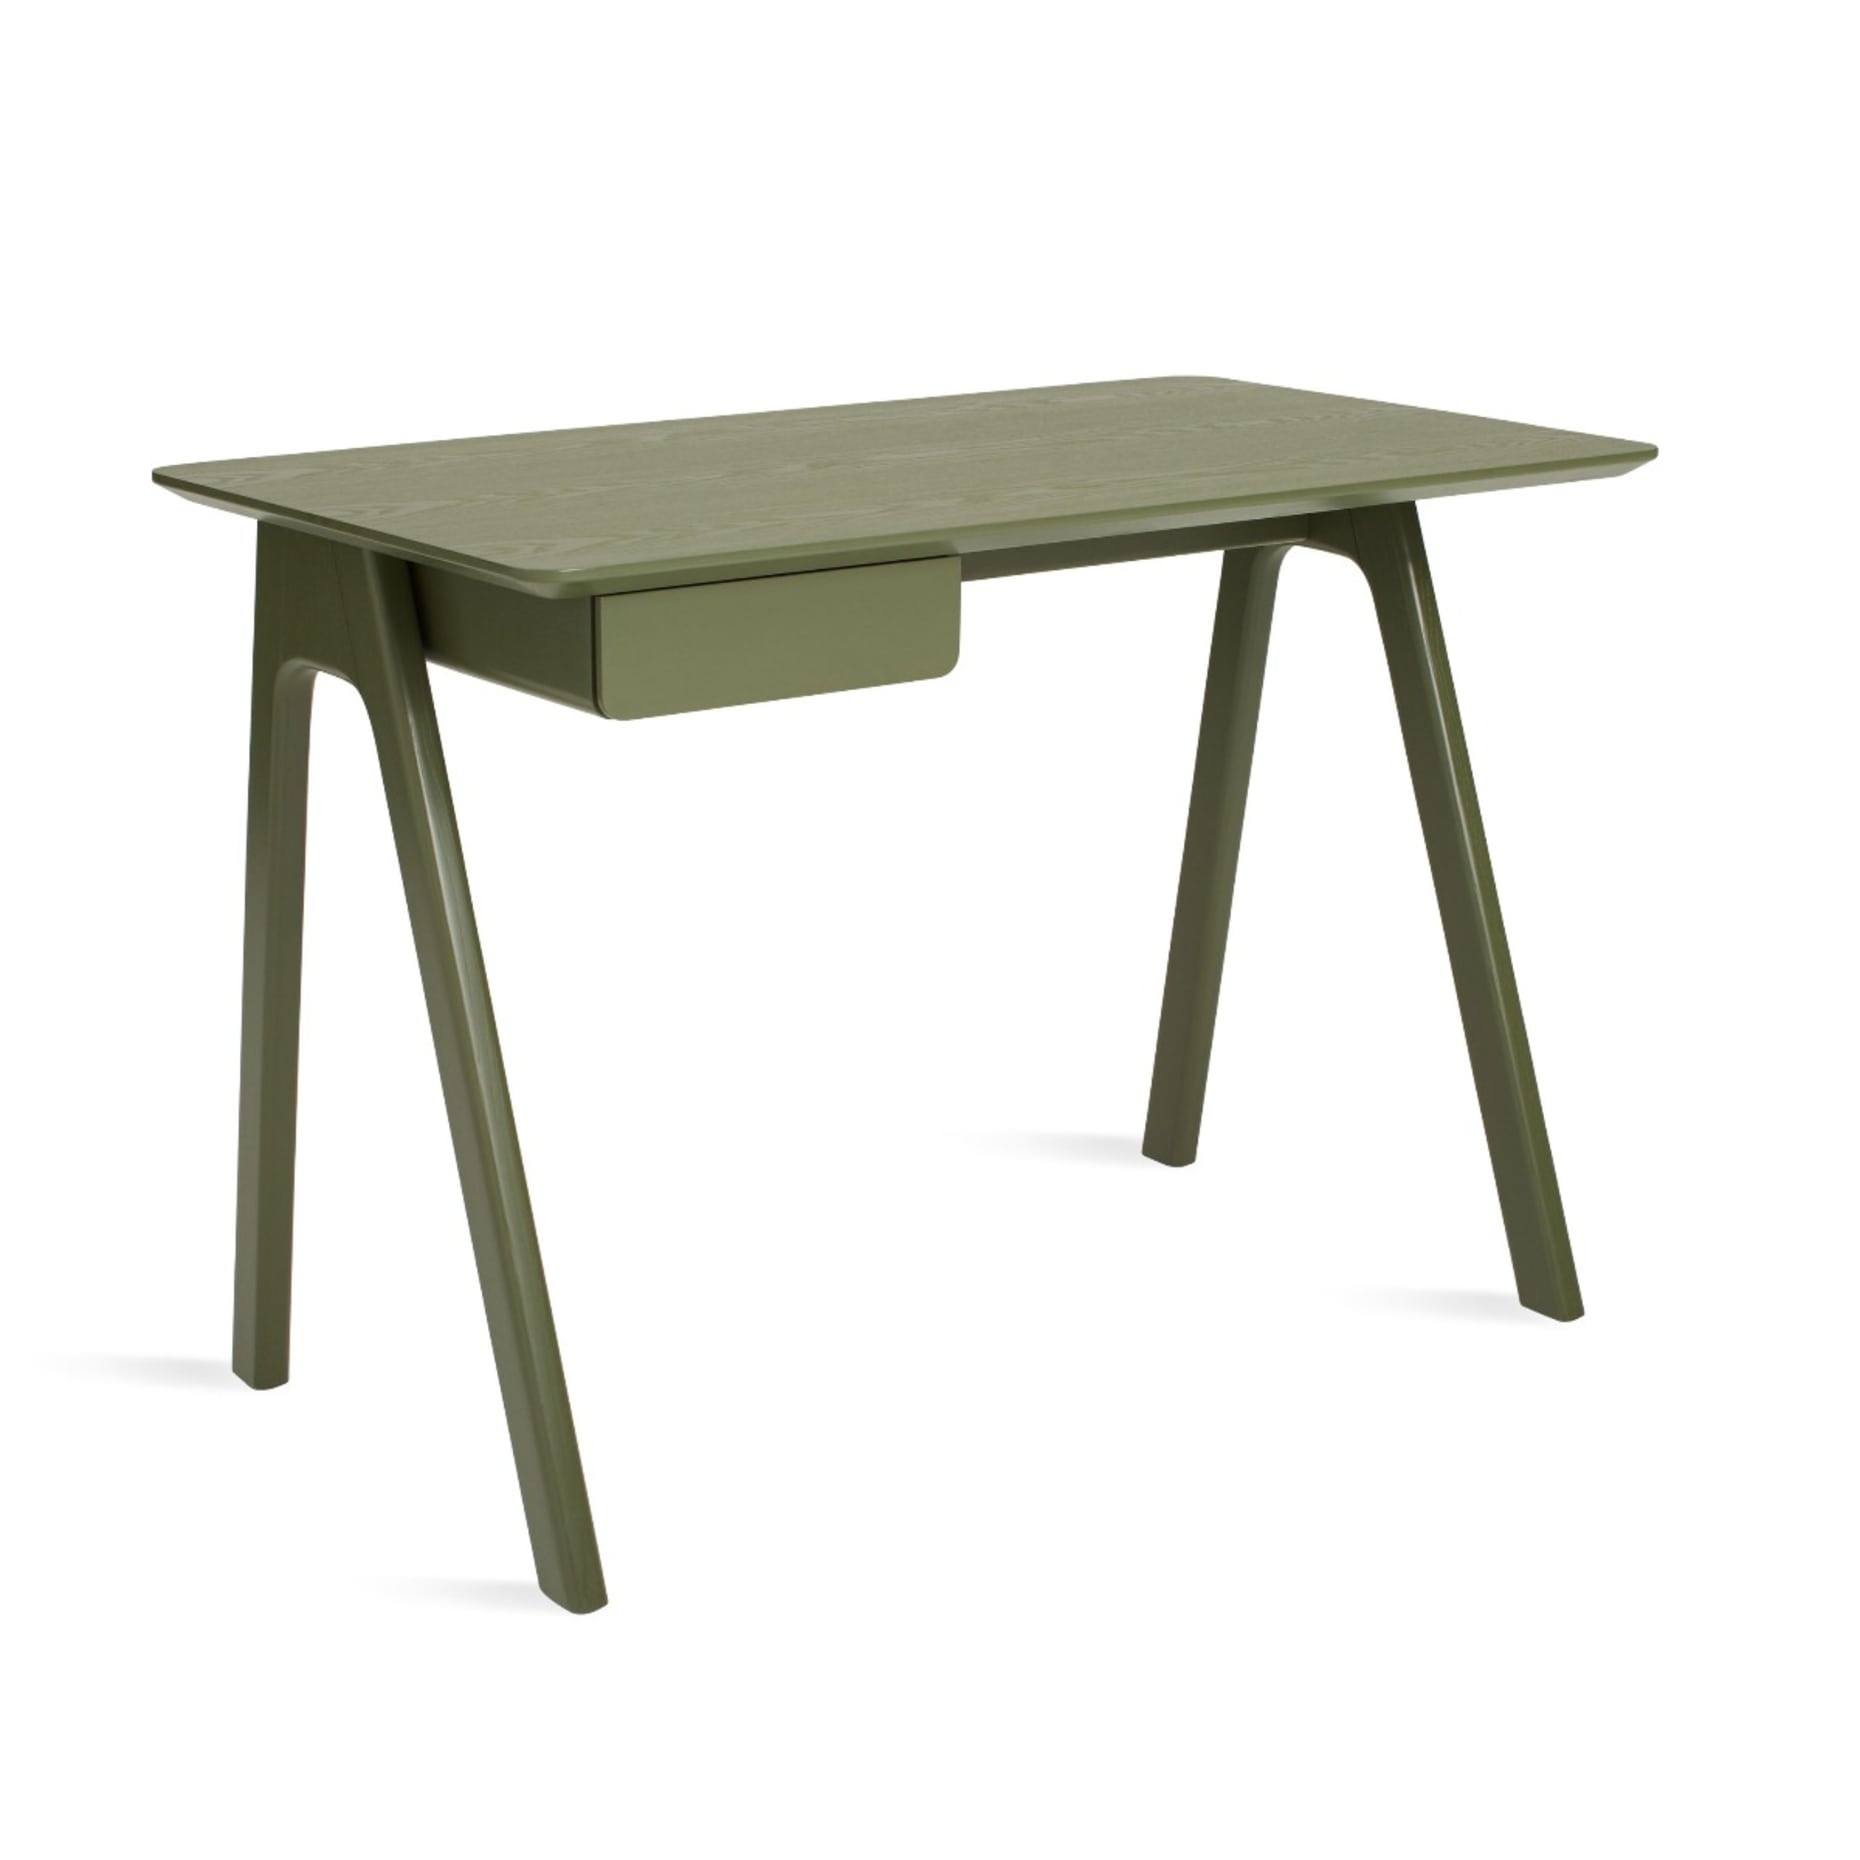 ss1 smdesk ol 34high stash desk olive 1